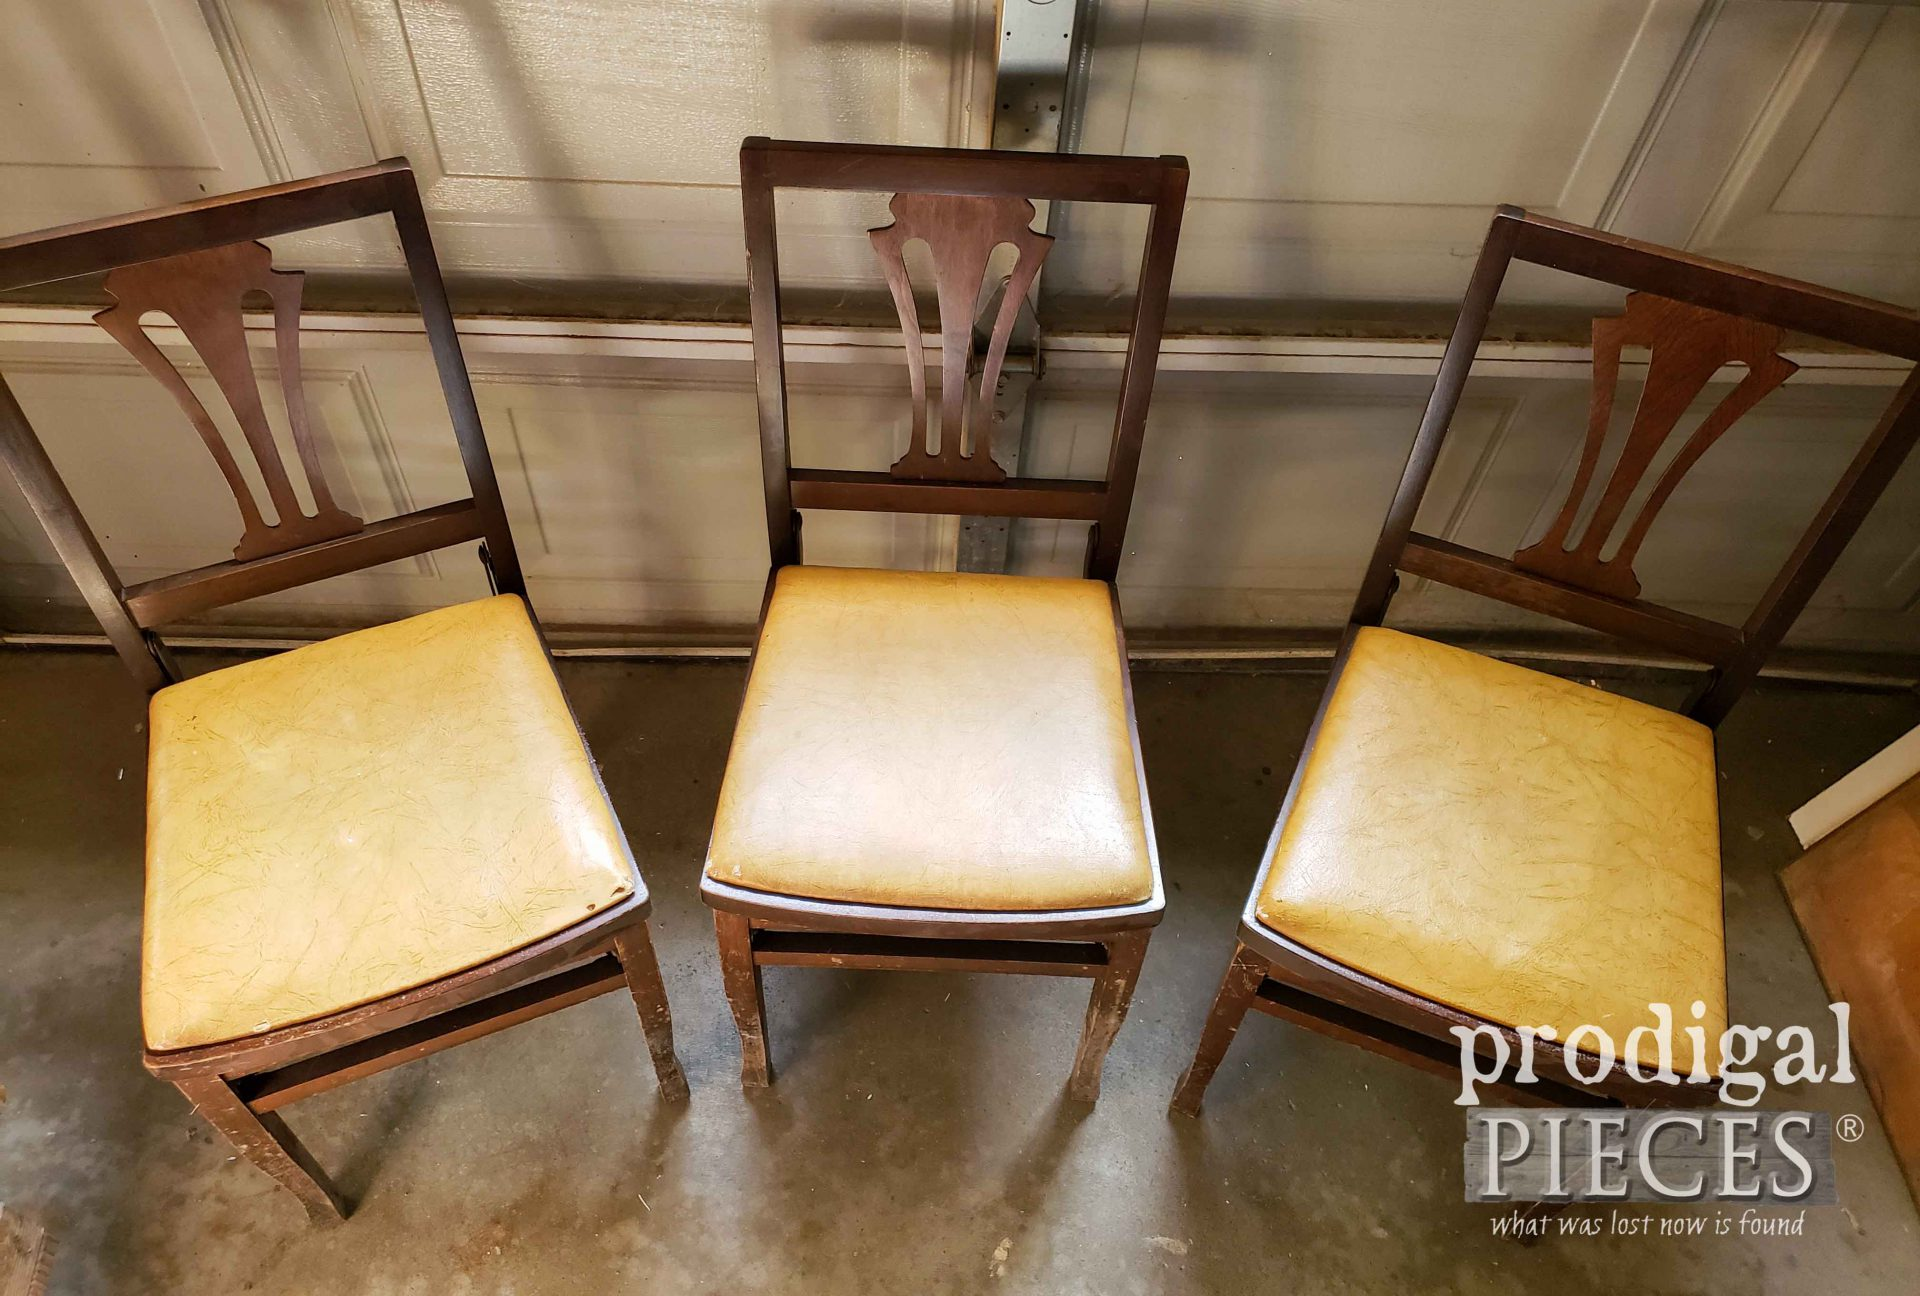 Original Vinyl Upholstery on Solid Kumfort Folding Chairs | prodigalpieces.com